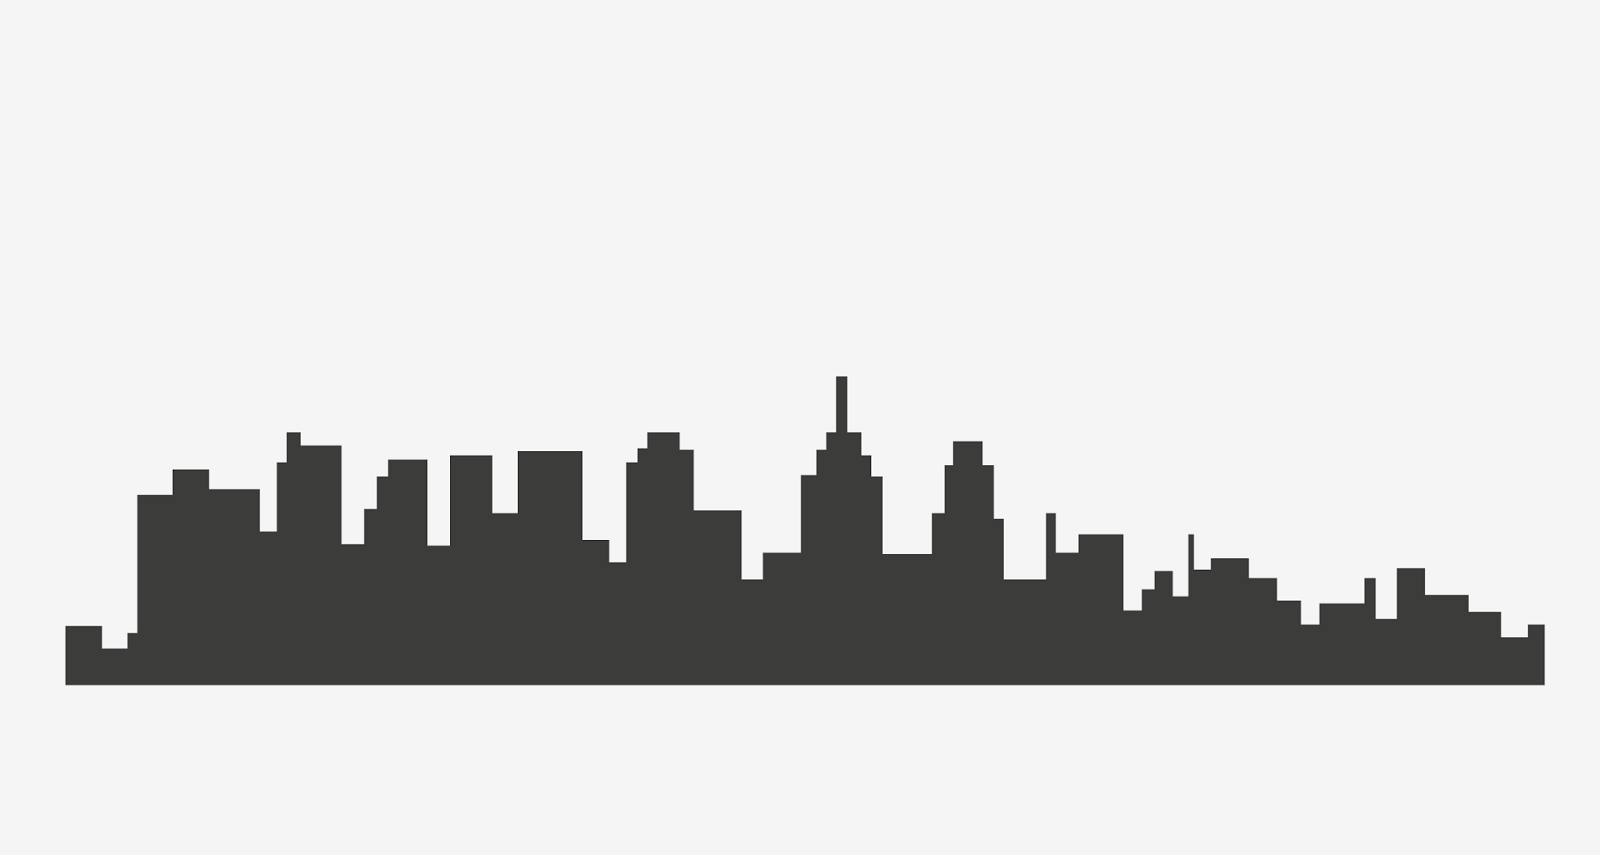 los angeles skyline silhouette vector at getdrawings com free for